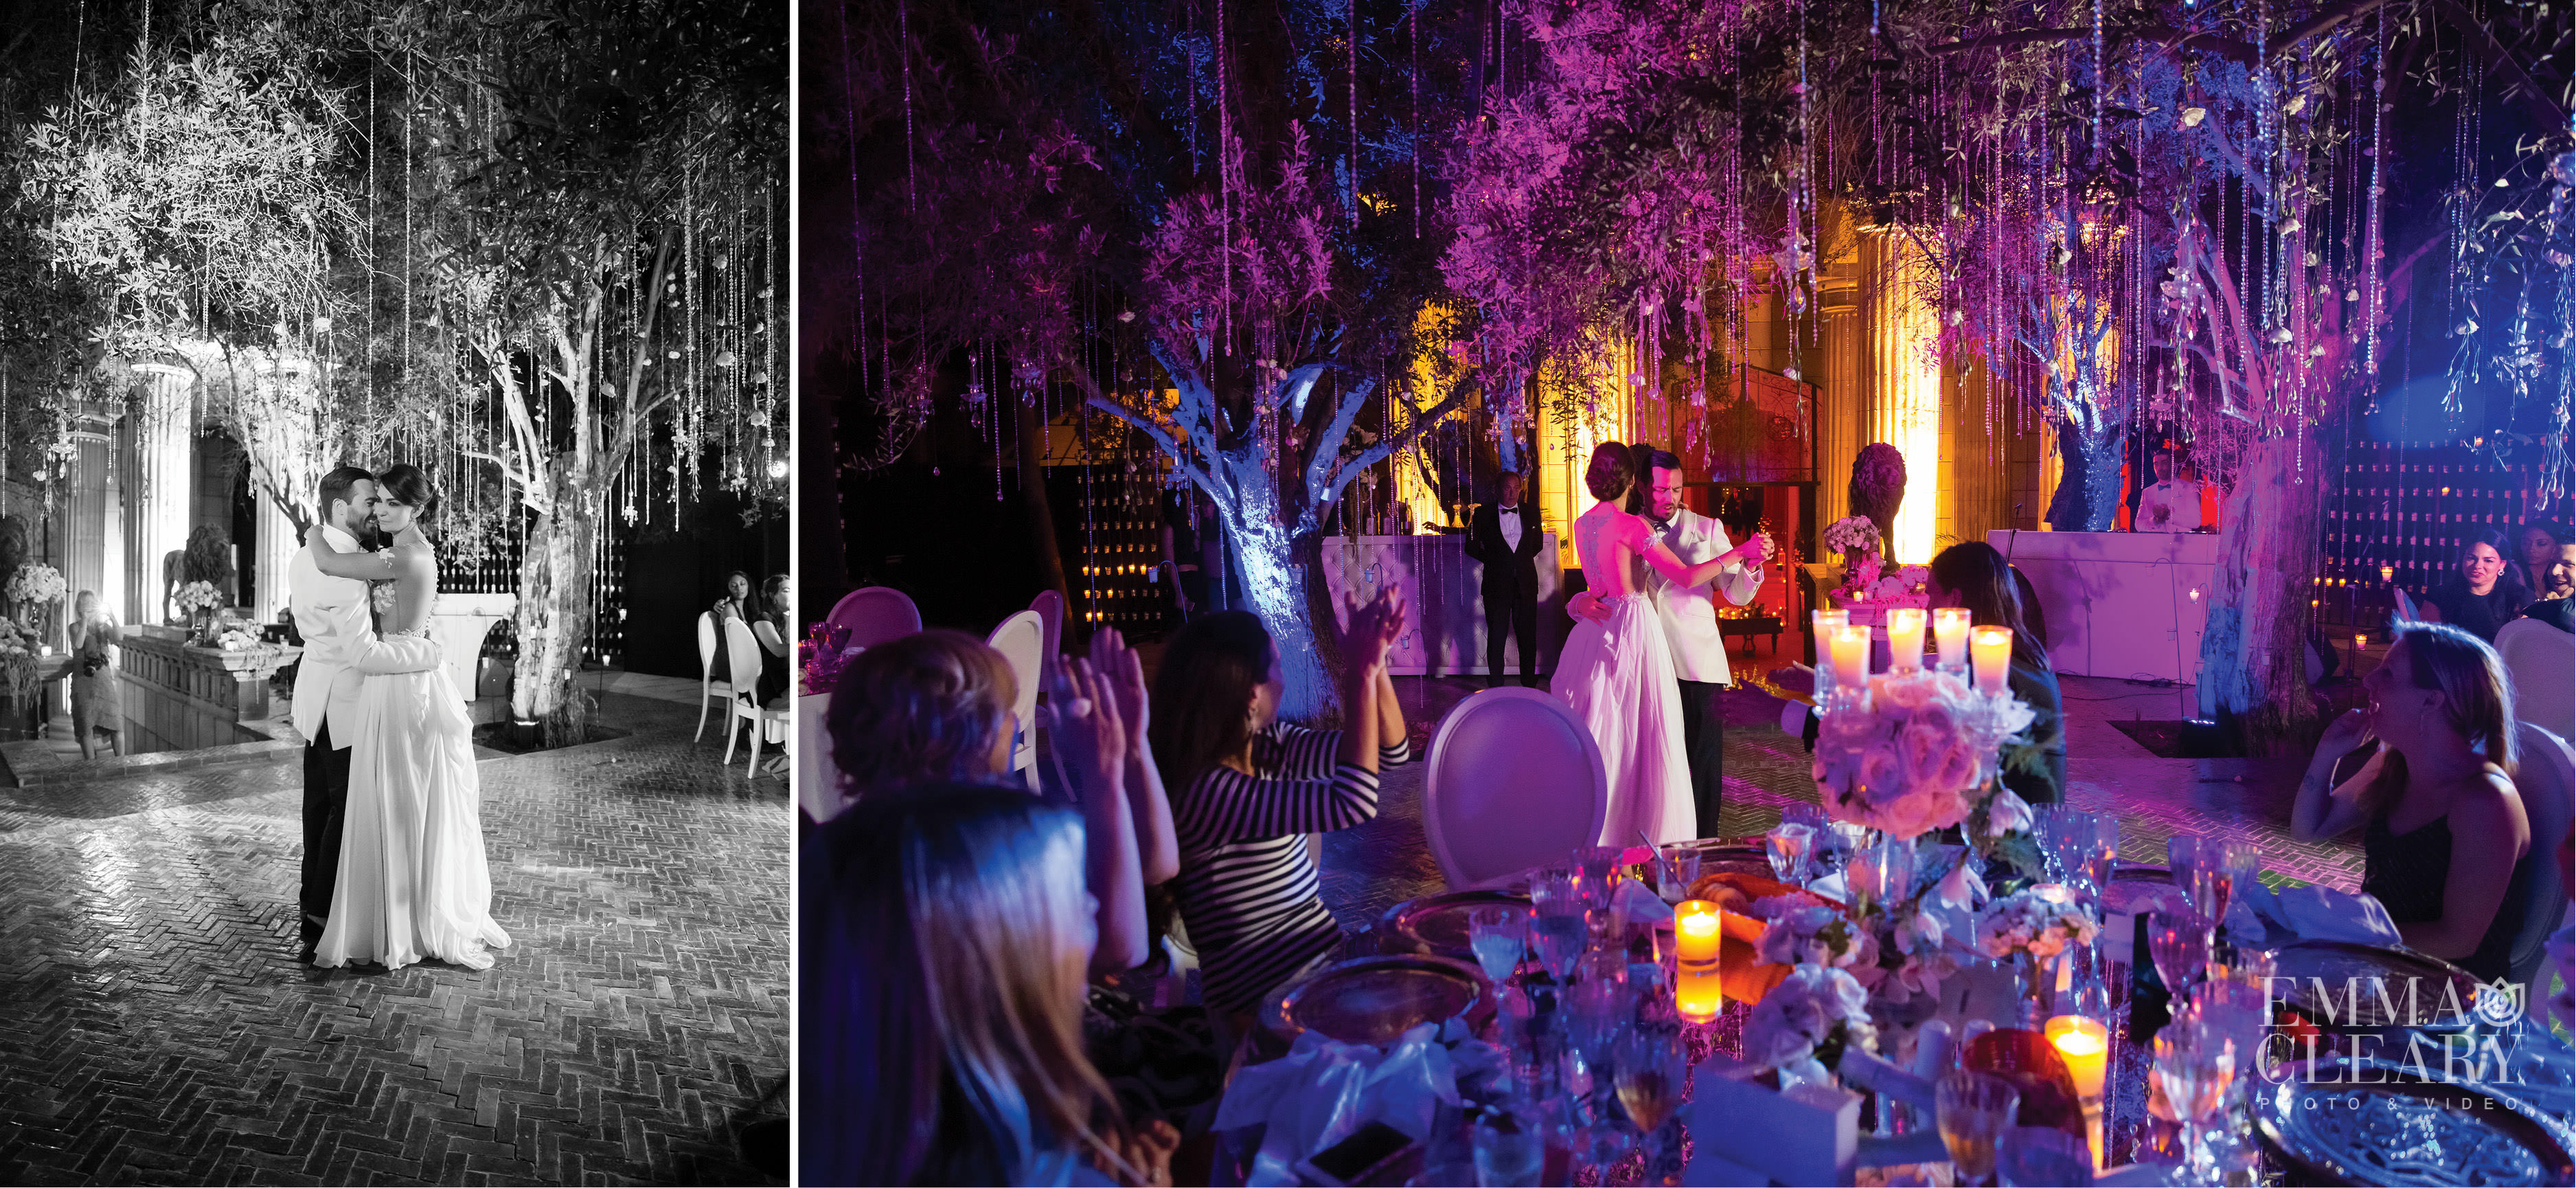 Emma_cleary_photography Destination Wedding Morrocco19